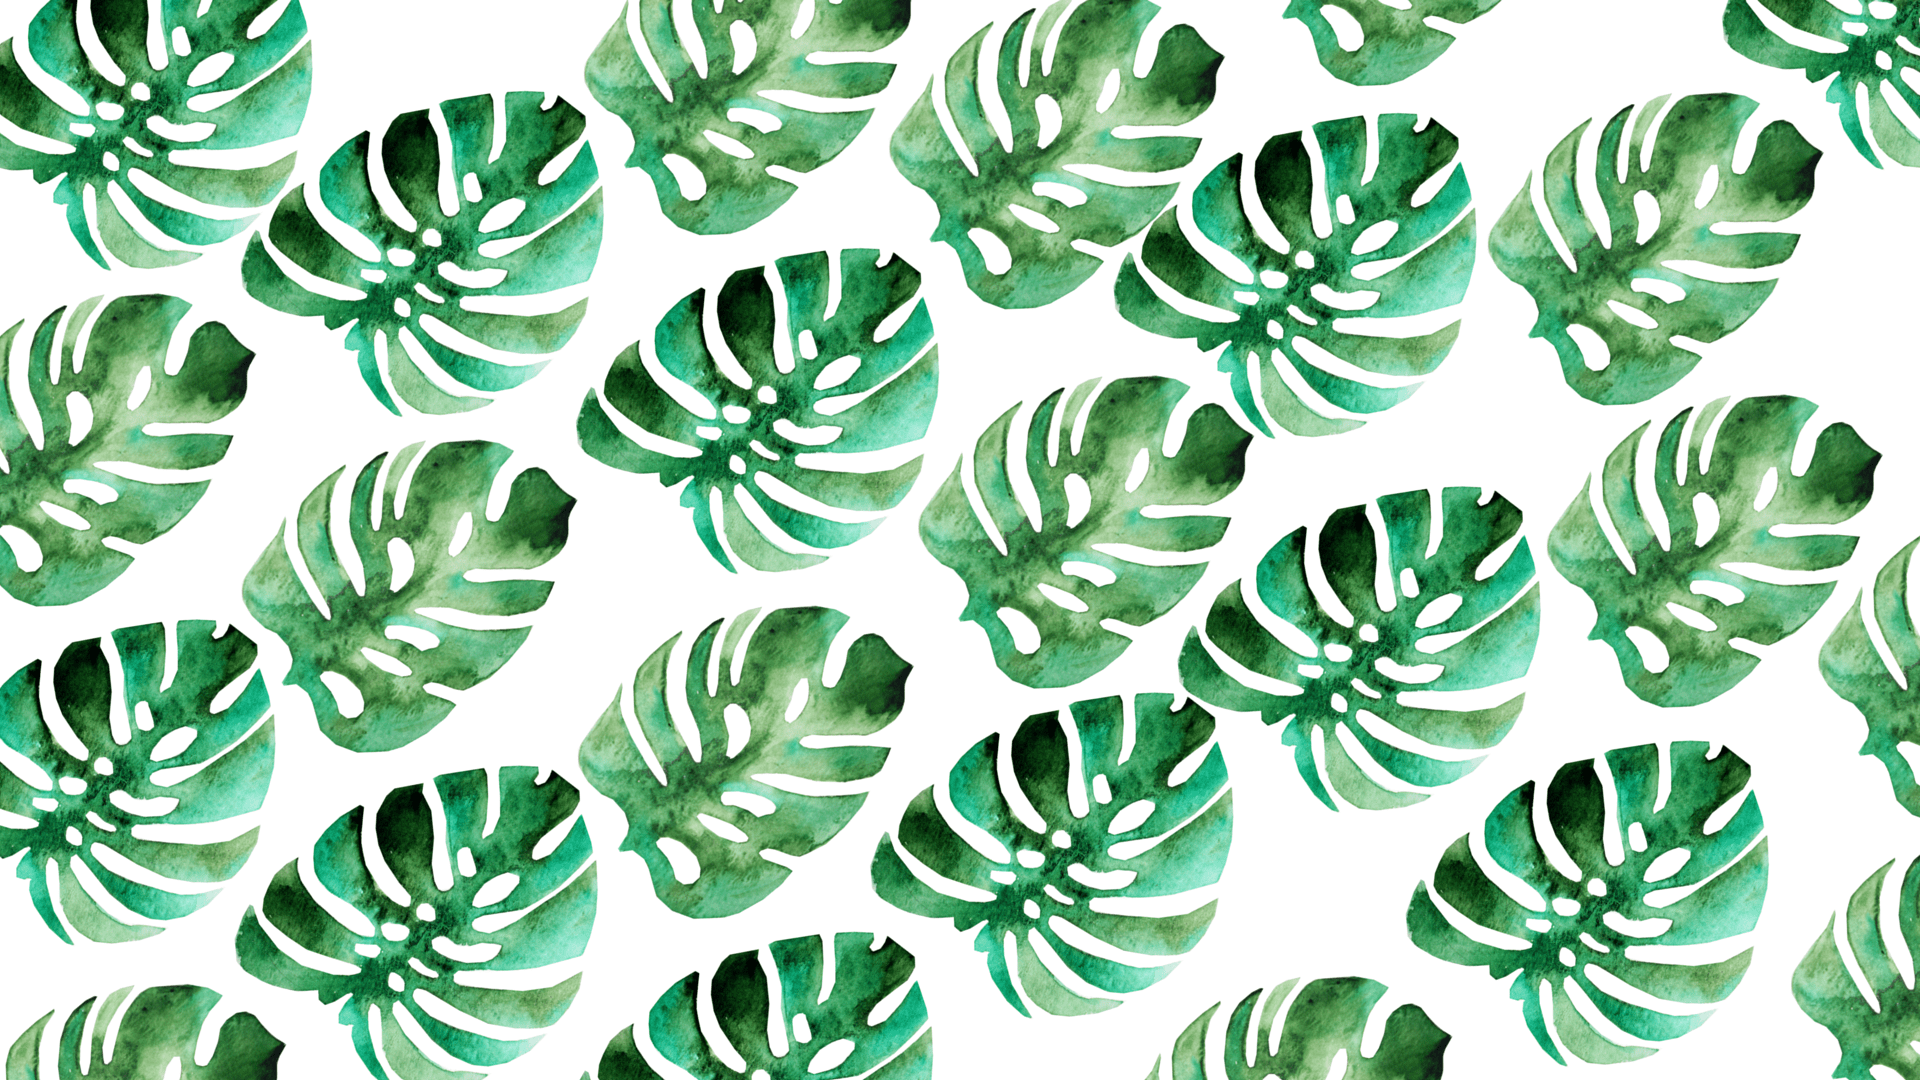 Palm Leaves Desktop Wallpaper Posted By Sarah Simpson A collection of the top 34 tropical leaves wallpapers and backgrounds available for download for free. palm leaves desktop wallpaper posted by